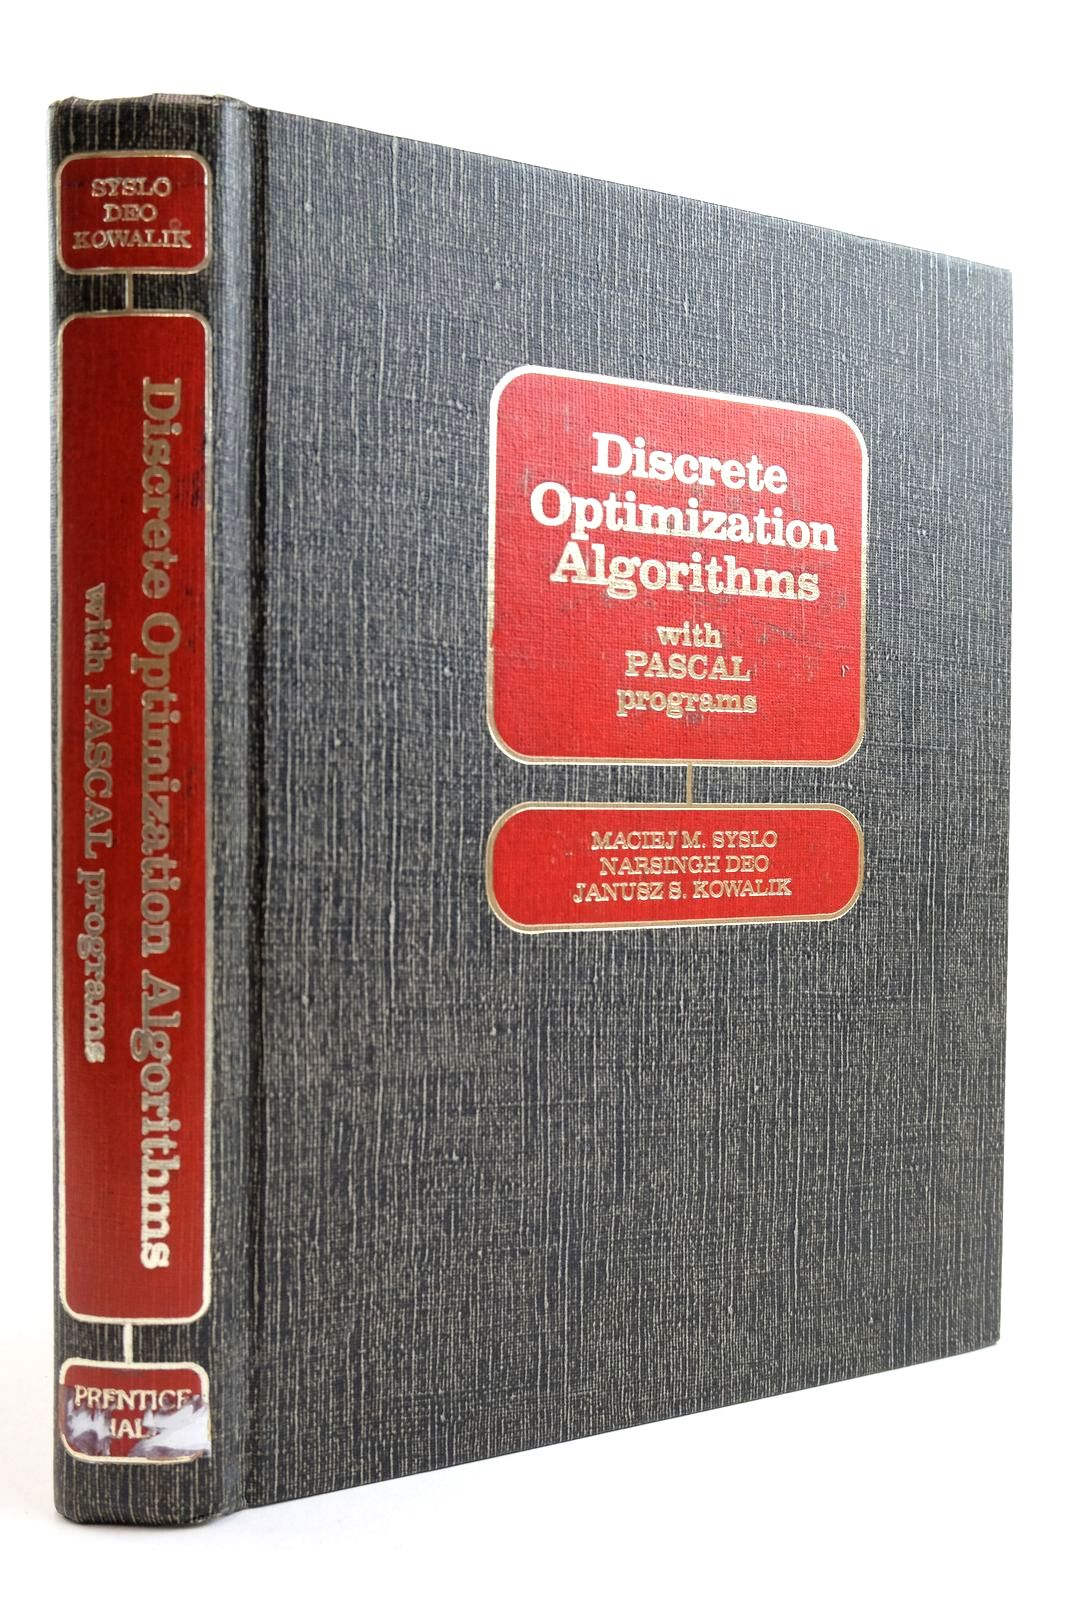 Photo of DISCRETE OPTIMIZATION ALGORITHMS WITH PASCAL PROGRAMS written by Syslo, Maciej M. Deo, Narsingh Kowalik, Janusz S. published by Prentice-Hall Inc. (STOCK CODE: 2134108)  for sale by Stella & Rose's Books